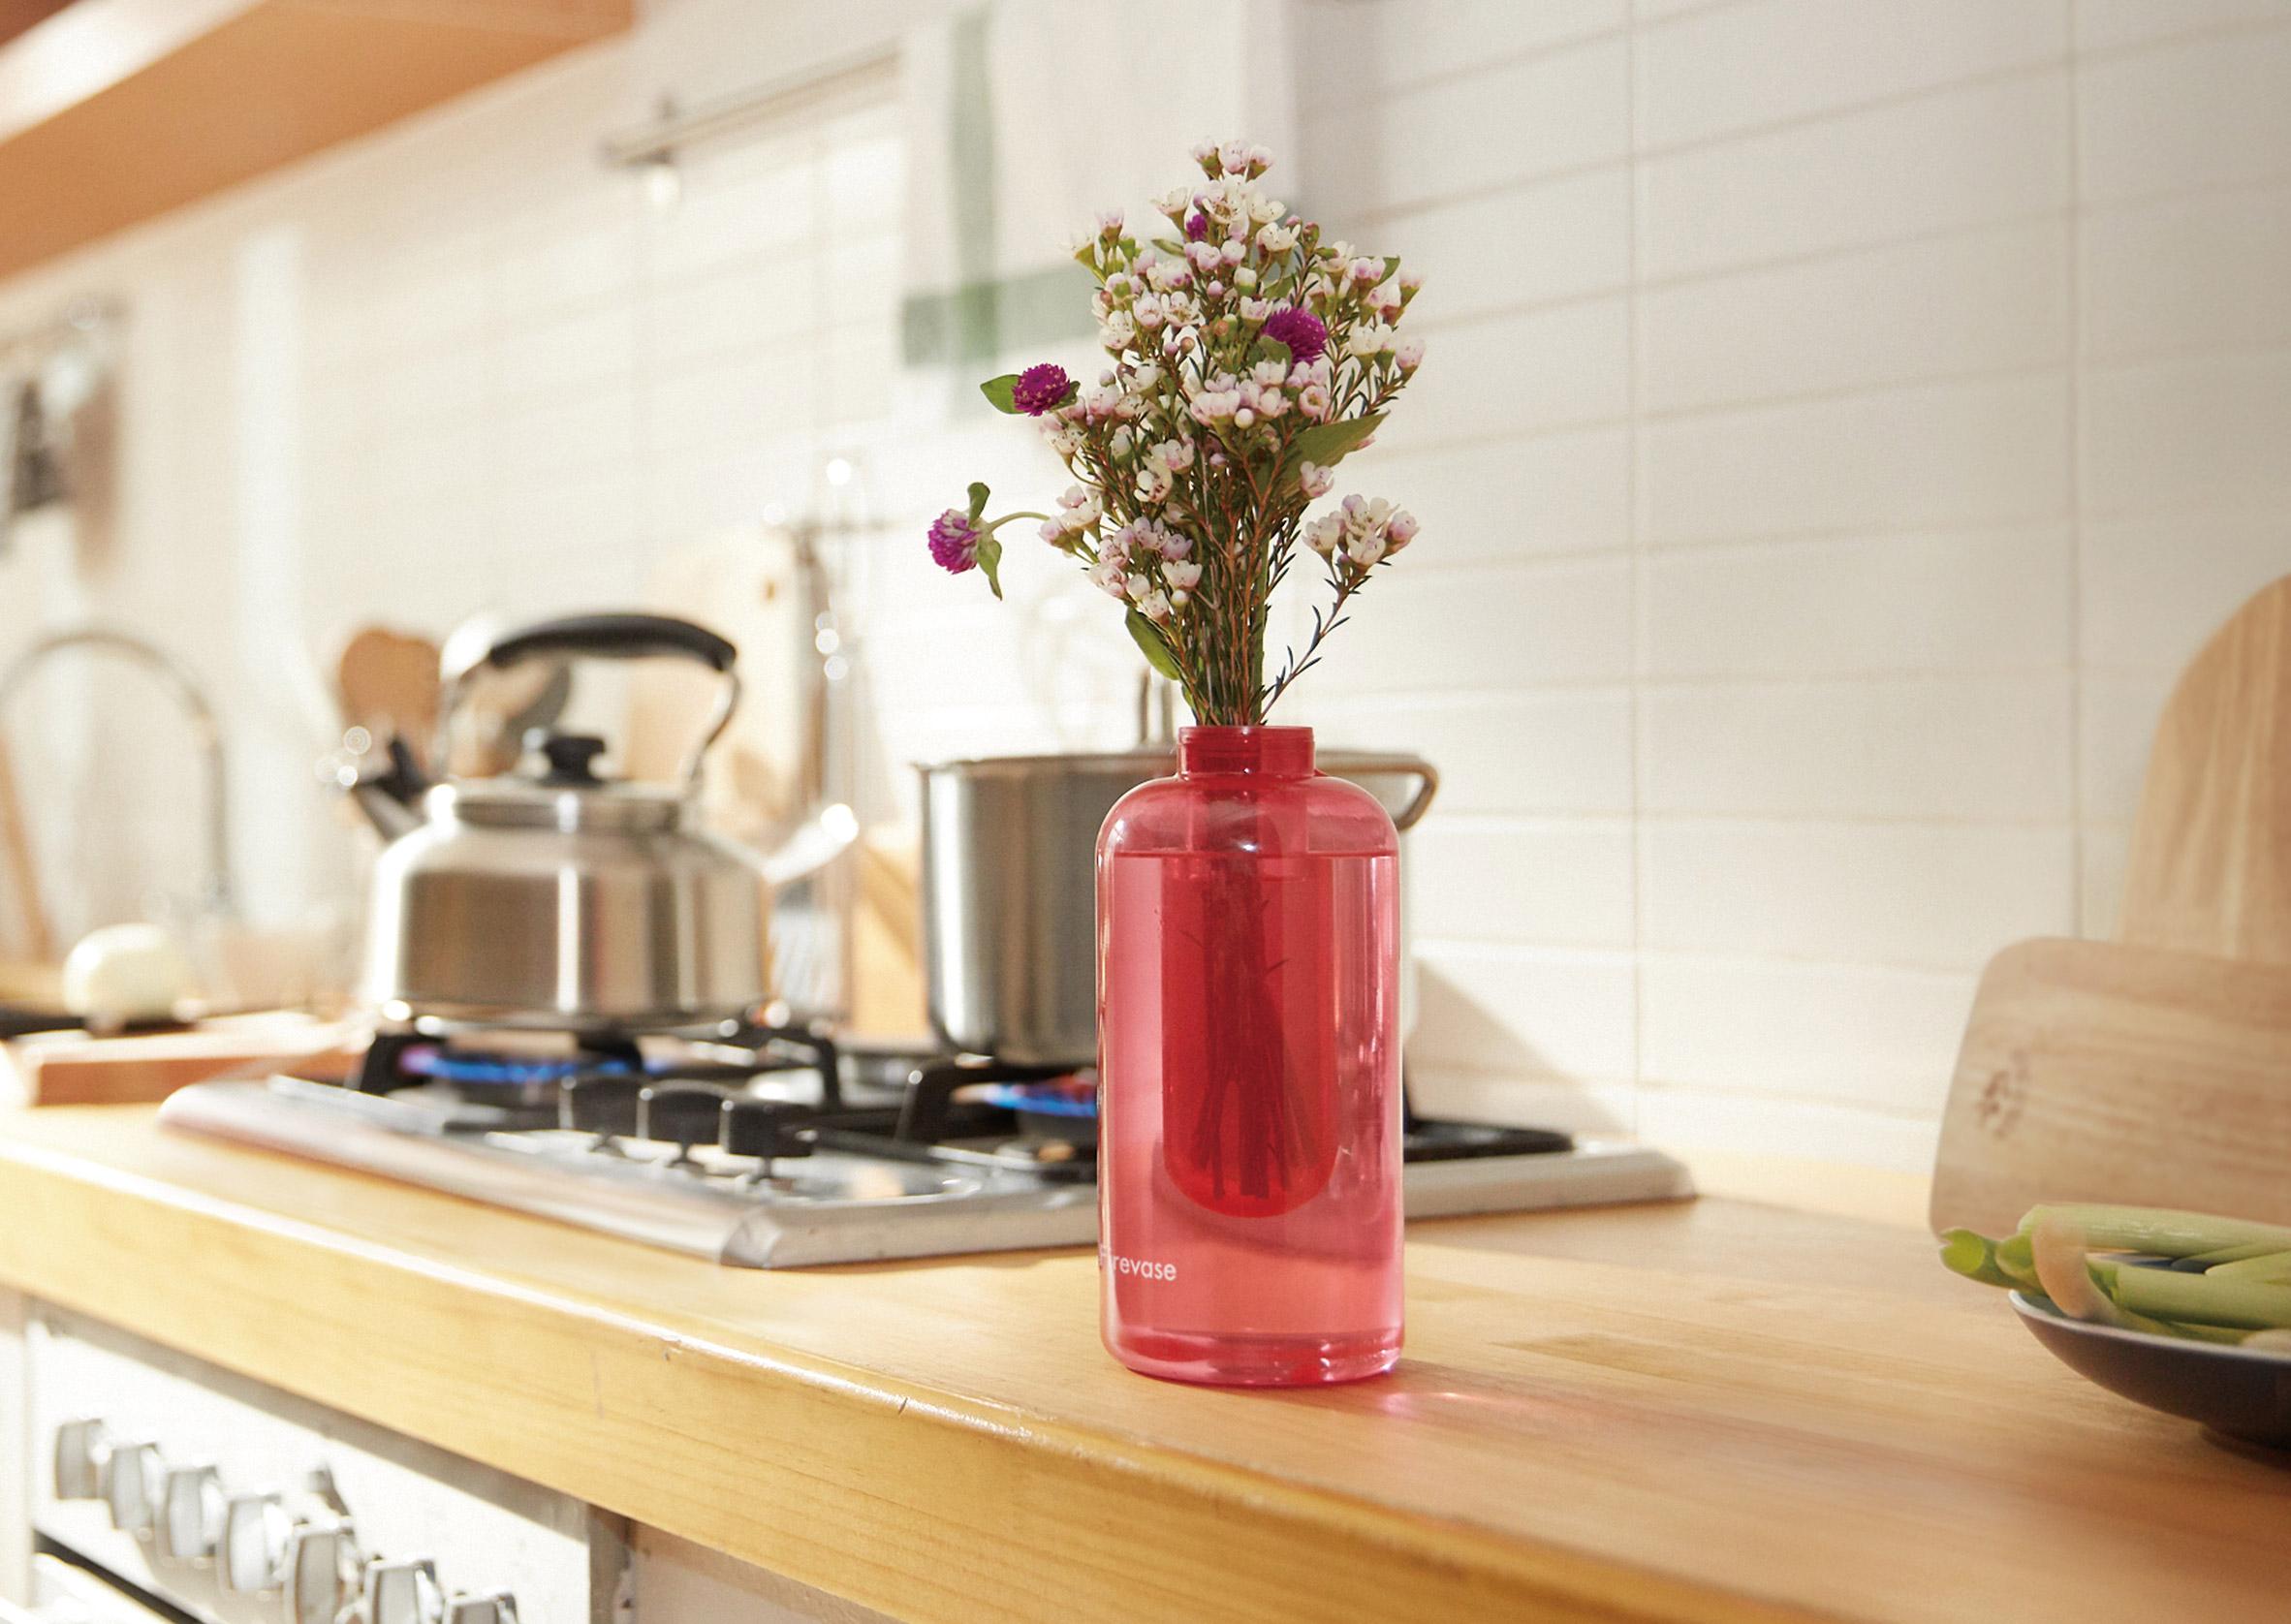 FireVase, Flower vase by Samsung that doubles as a fire extinguisher